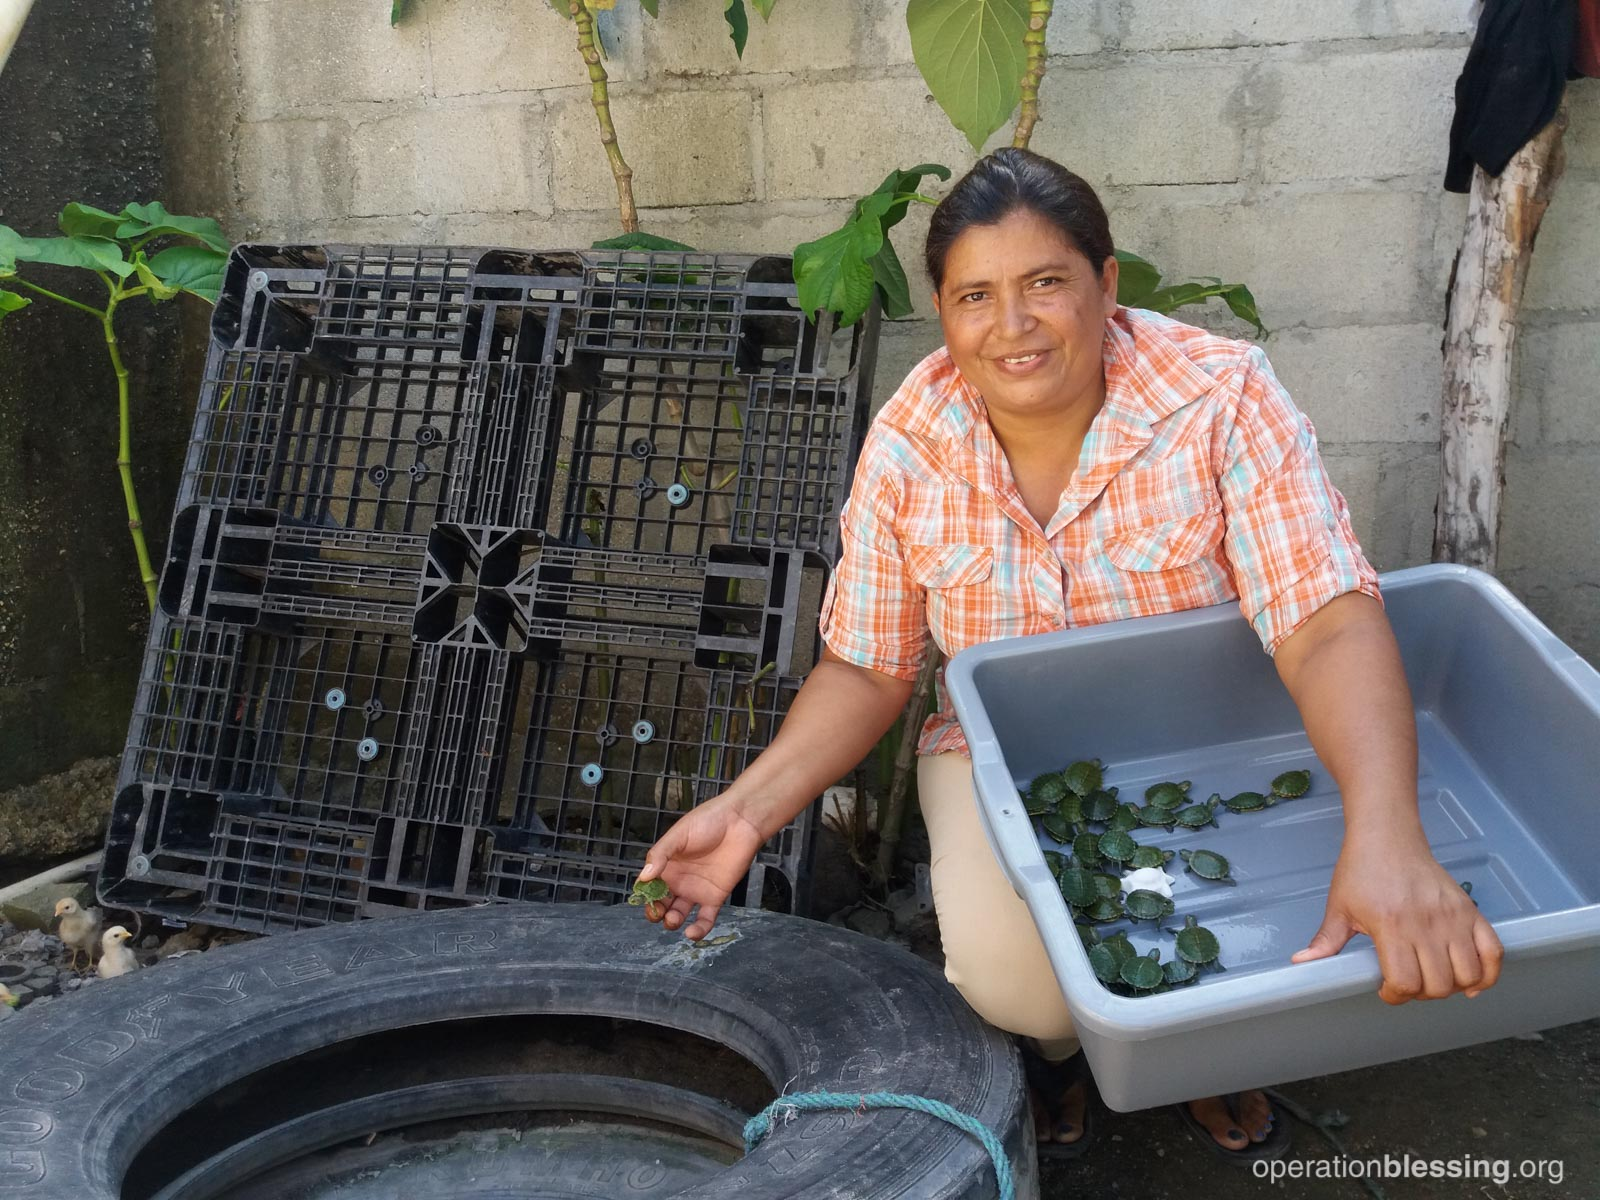 JUNE: A pilot program in Honduras aims to stop the spread of mosquito-borne diseases like Zika, chikungunya, and dengue fever using biological predators like turtles, copepods, and fish that eat mosquito larvae.